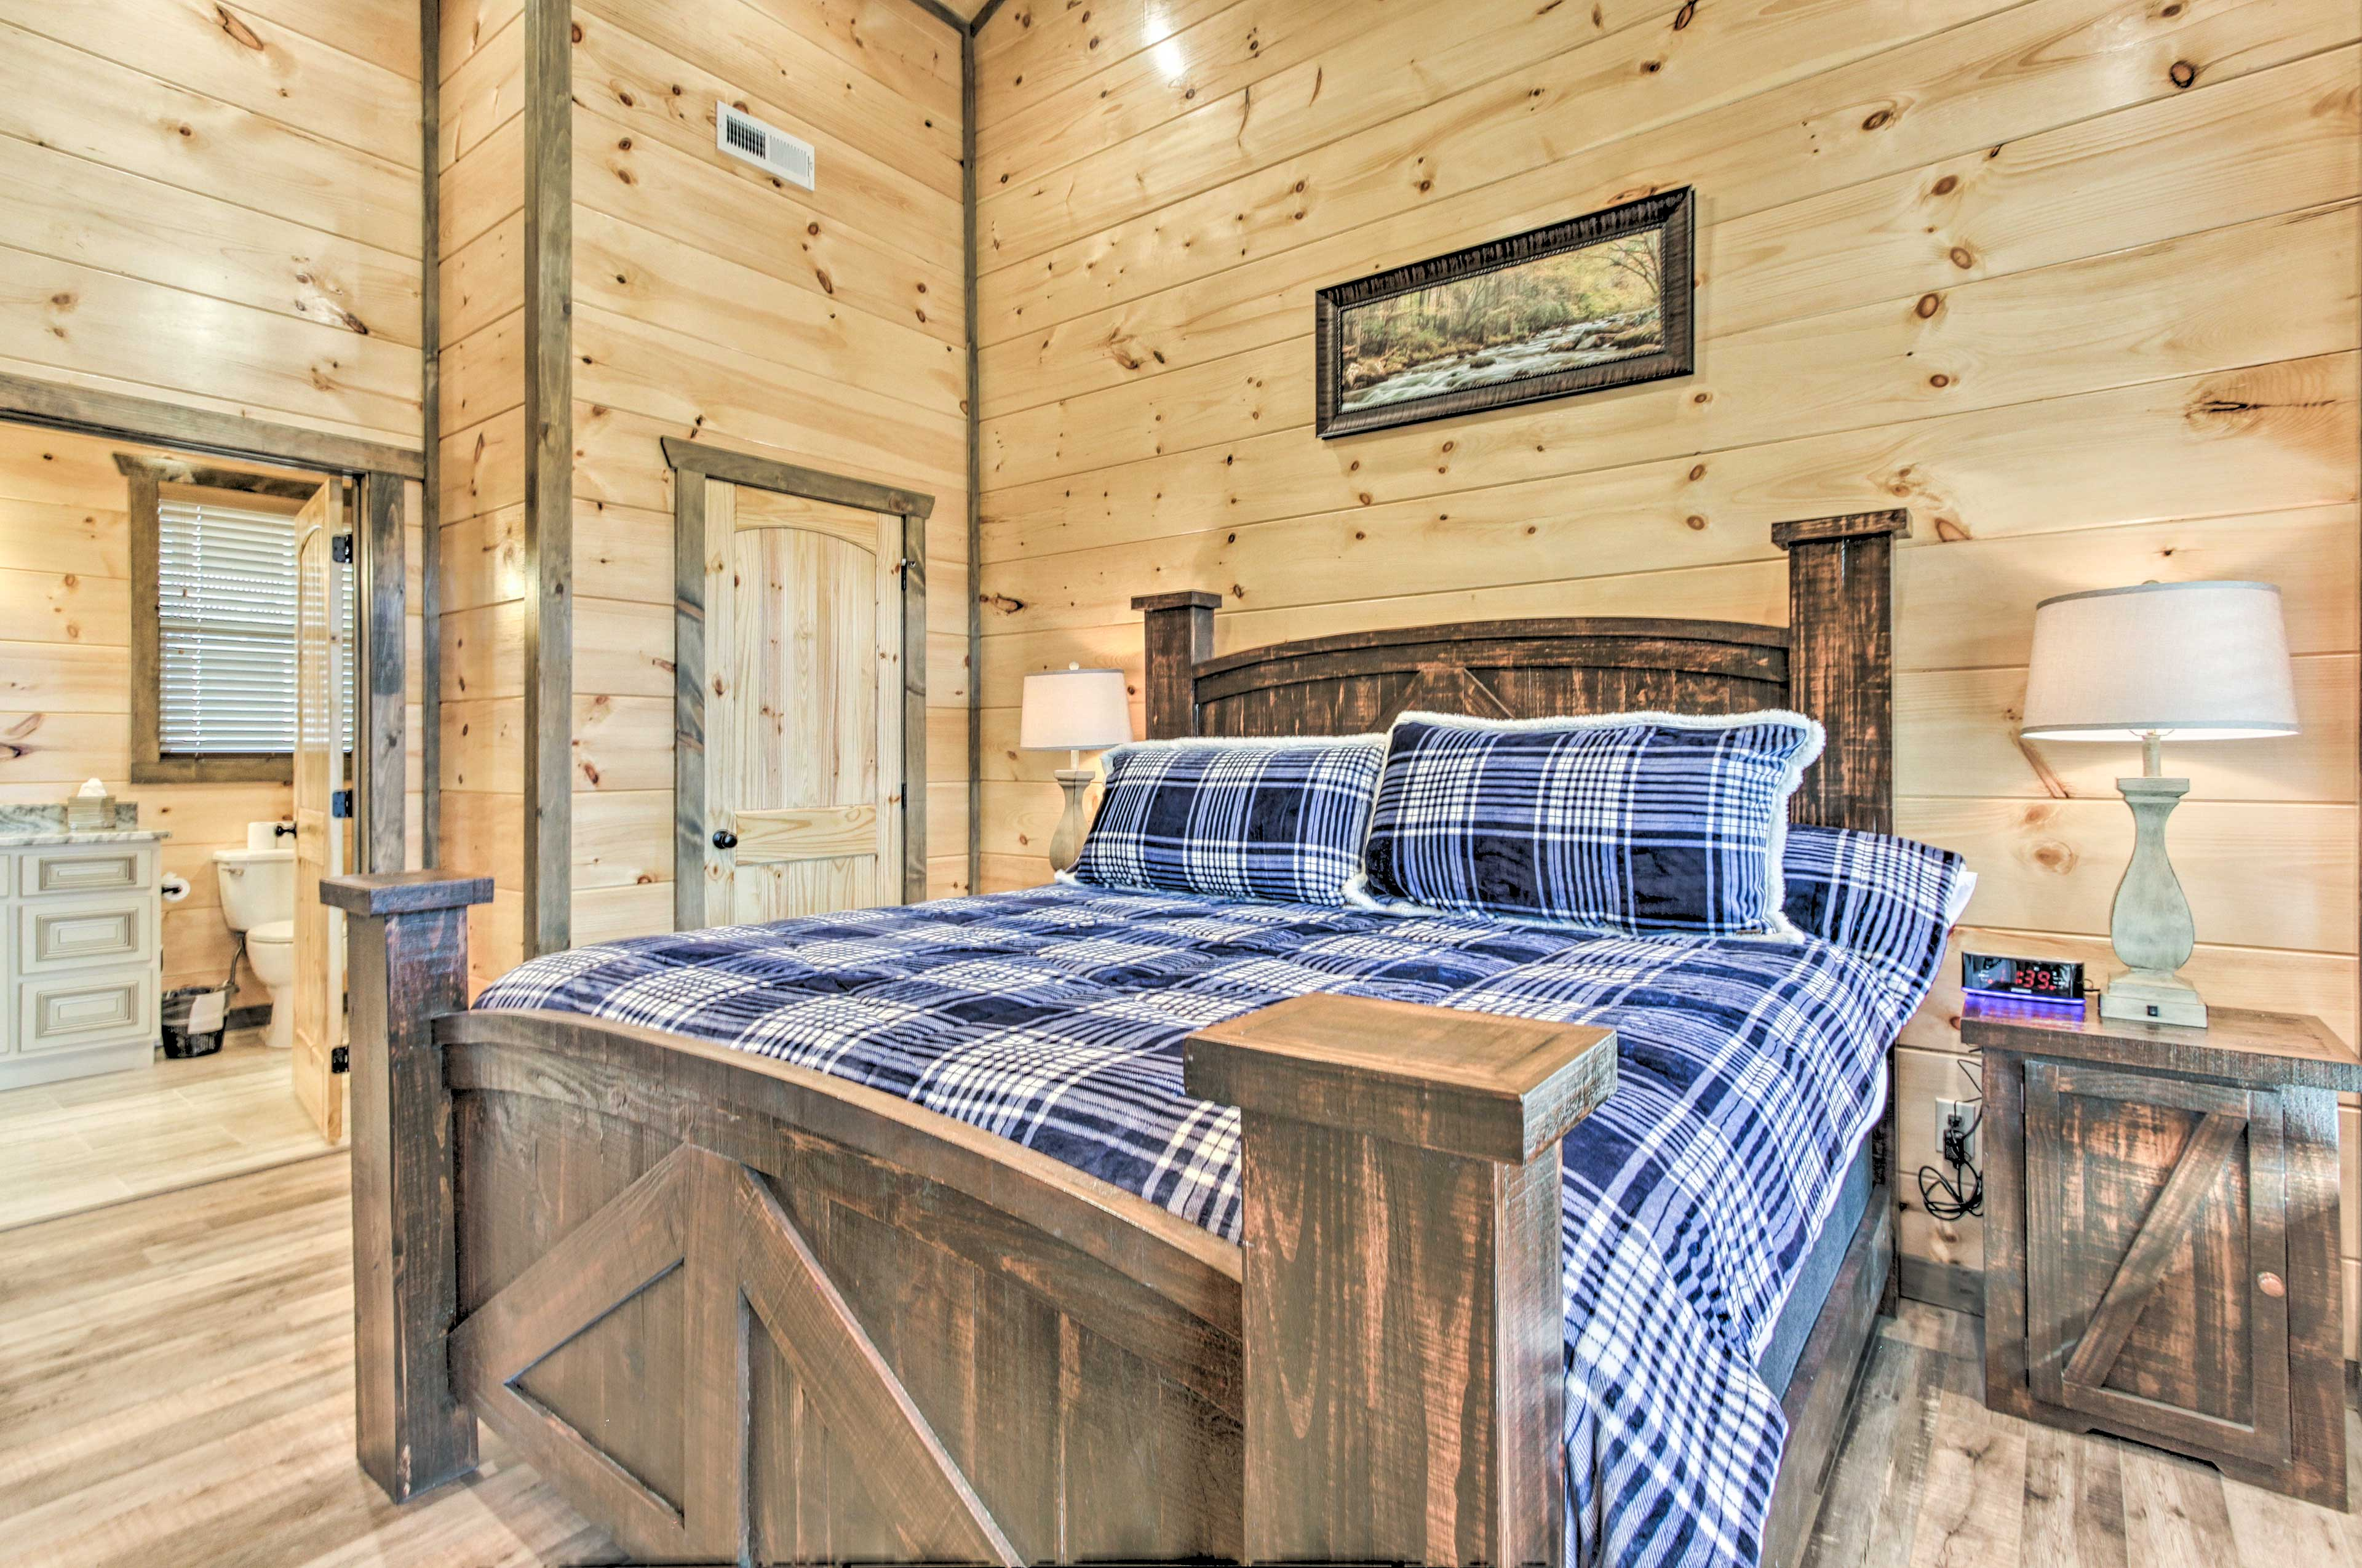 The cabin sleeps 6 guests with a sleeper sofa and an XL air mattress.